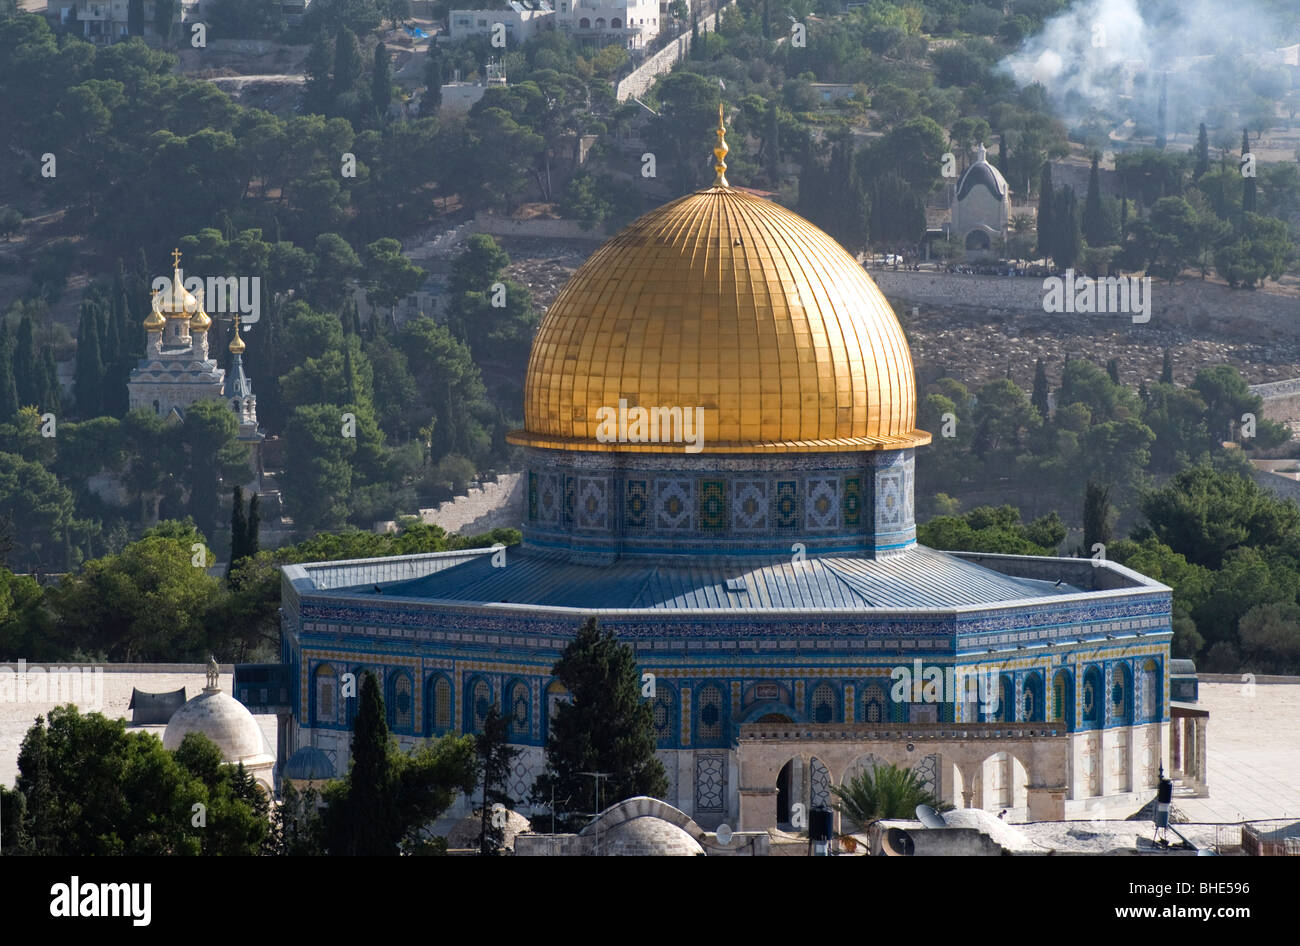 Dome of the Rock. Muslim holy site located on the Temple Mount in the Old City of Jerusalem, Israel - Stock Image